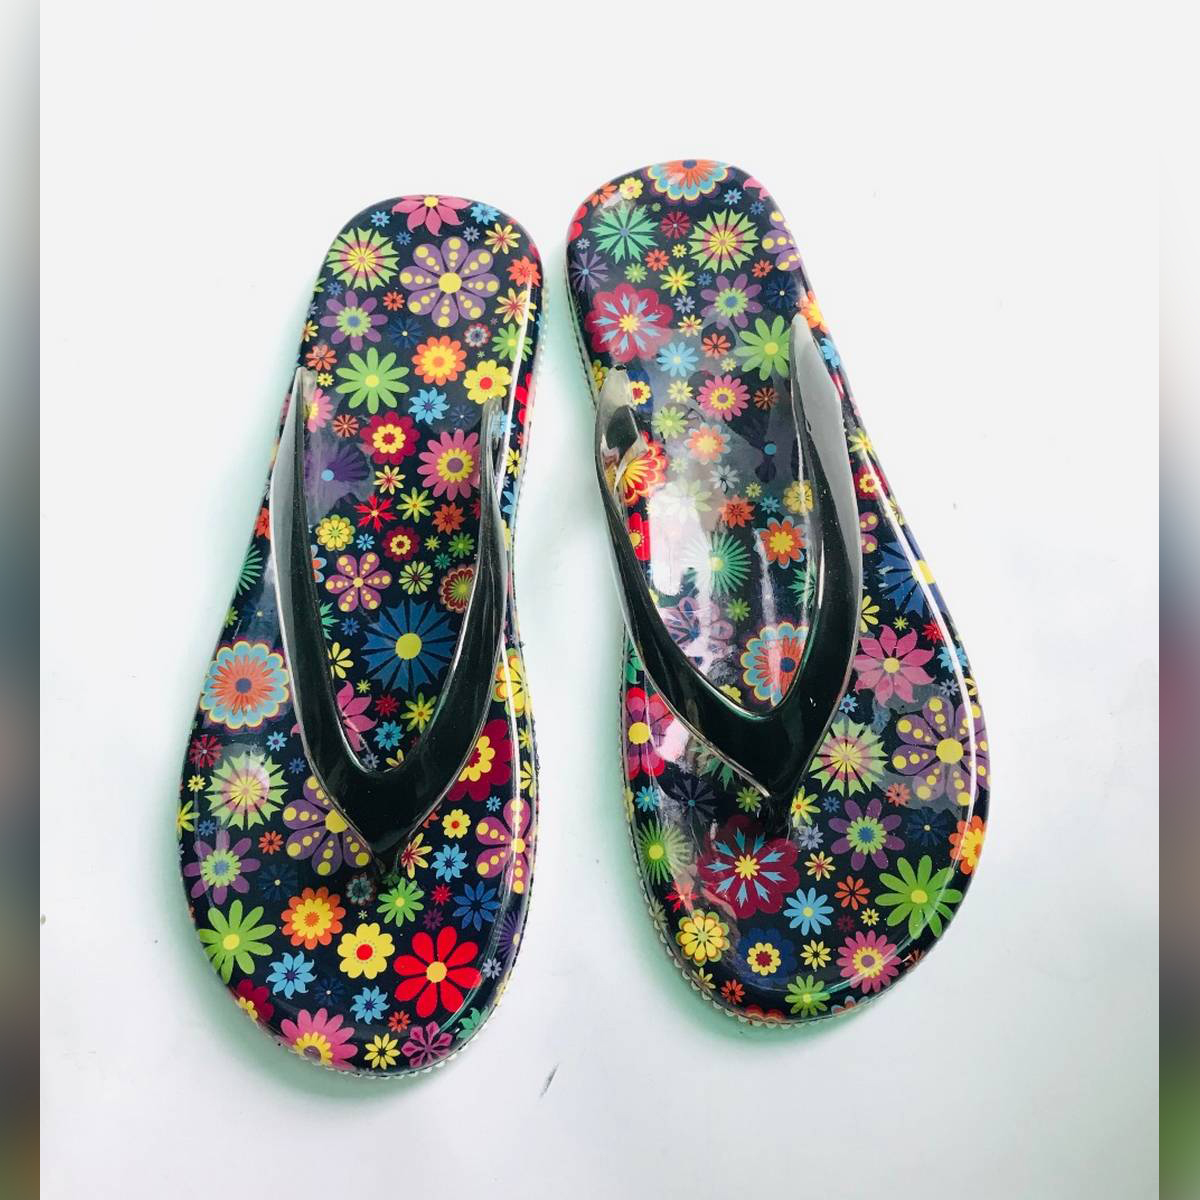 latest design slippers sunner indoor outdoor non slip washroom slippers soft and comfortable lovely style